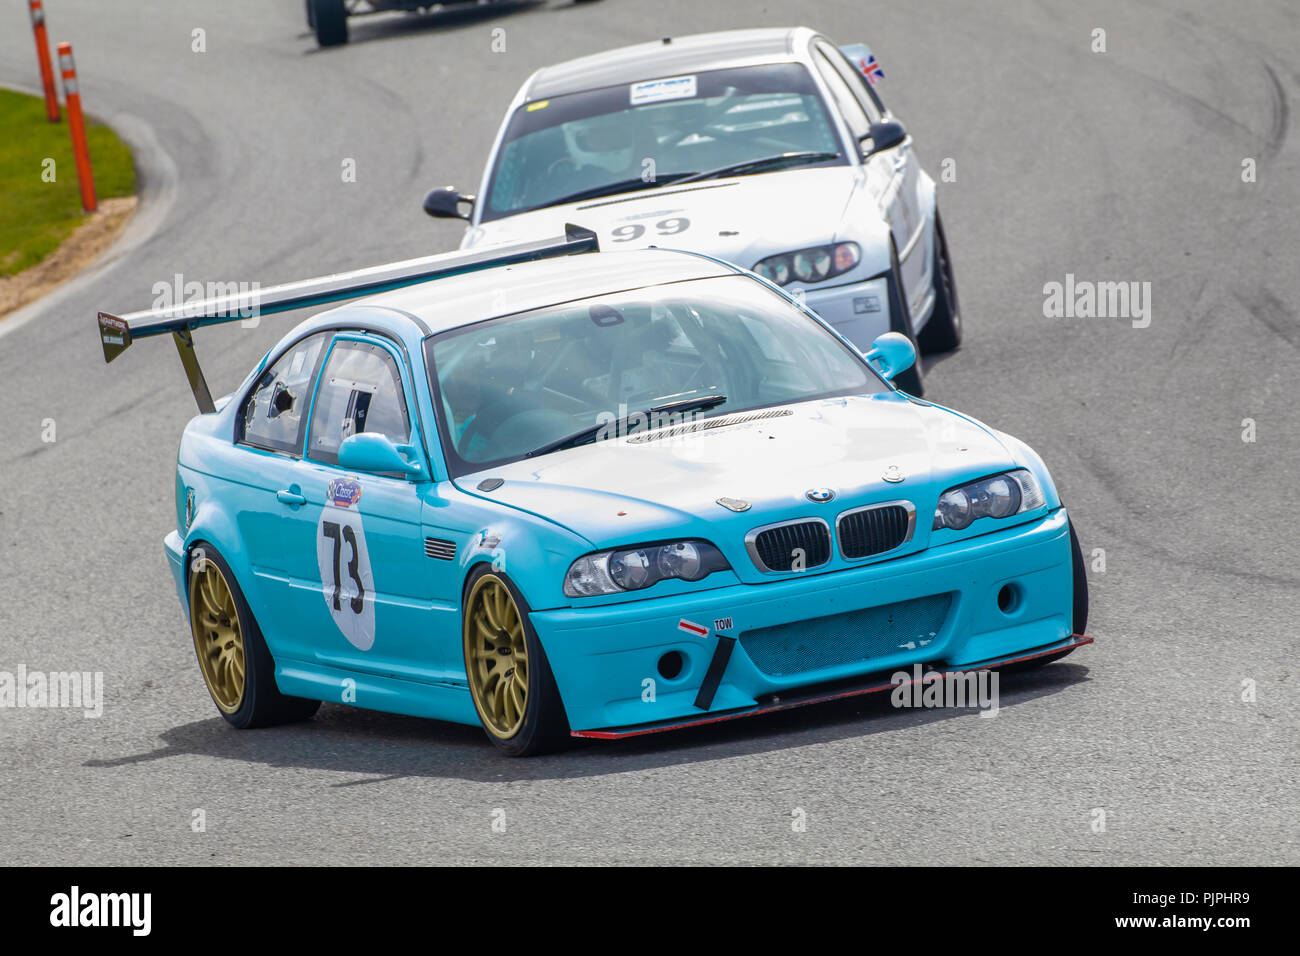 Bmw E46 M3 High Resolution Stock Photography And Images Alamy